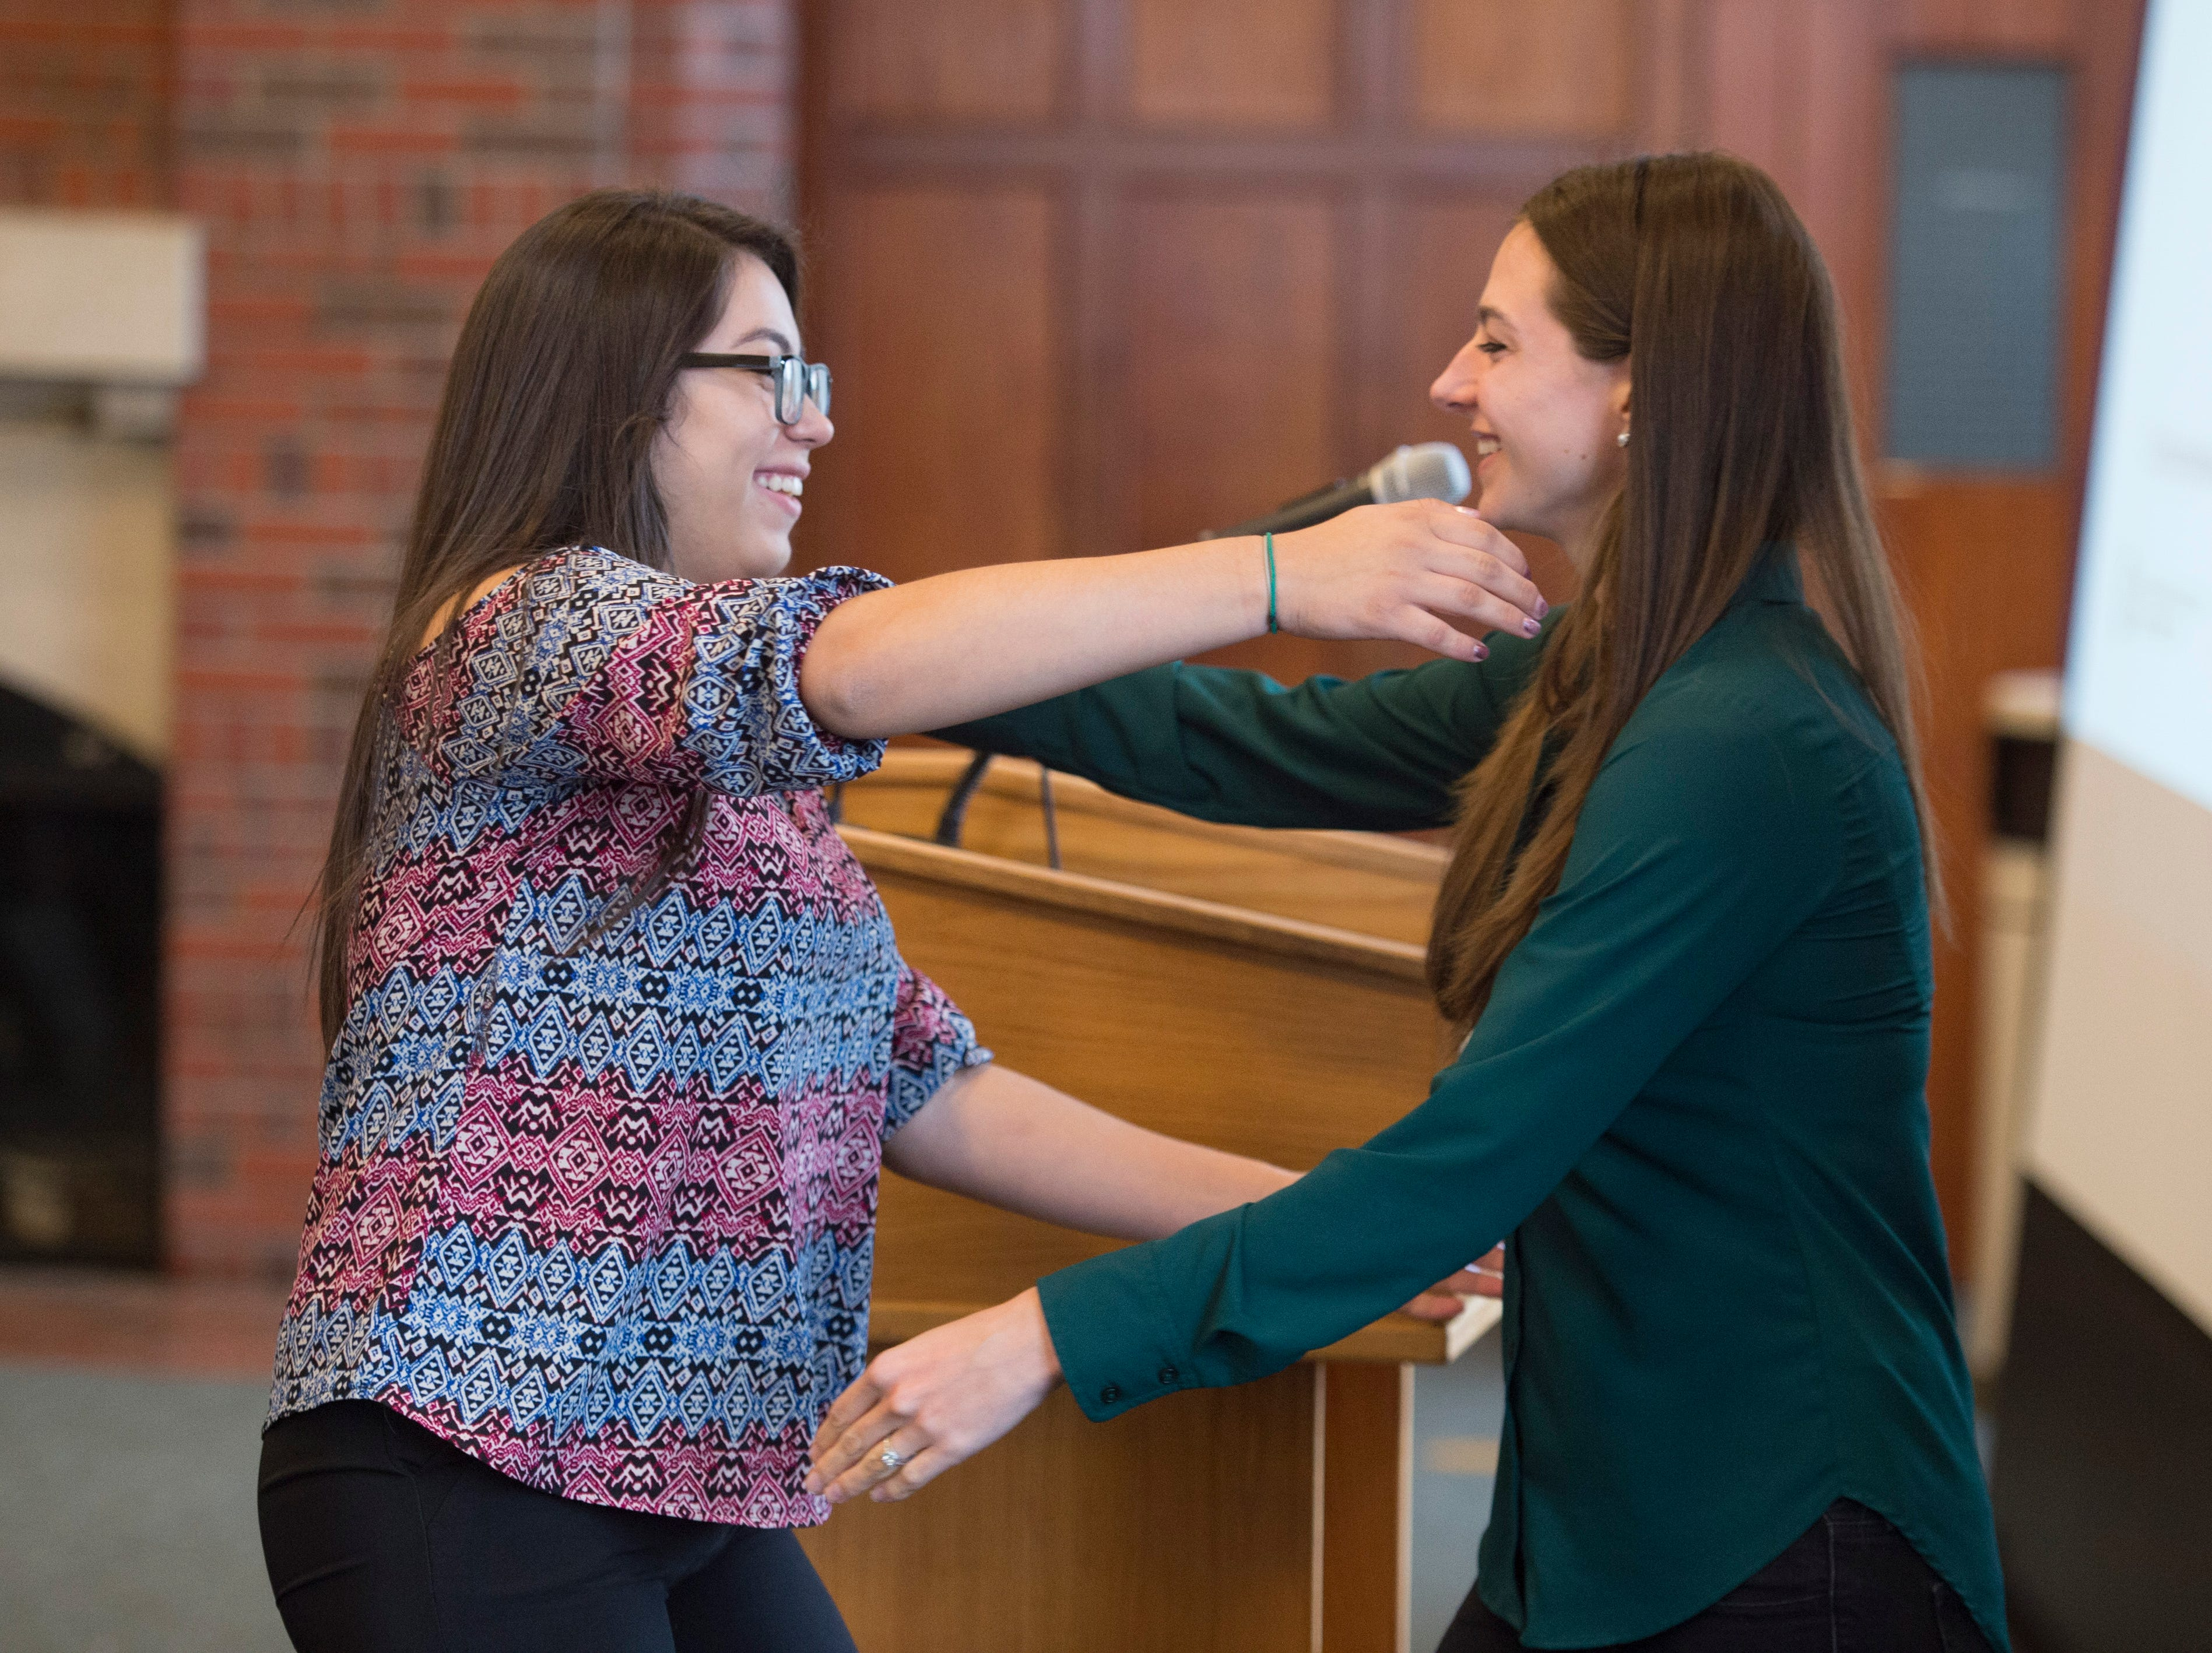 Litzy Fatima Lastra-Mendoza hugs Colordoan education reporter Kelly Ragan during the Coloradoan's First Class banquet at the University of Northern Colorado in Greeley on Saturday, October 6, 2018. First Class is a program that supports first-generation students in Northern Colorado. The program is now in its third year and is a partnership between The Coloradoan and Aims Community College, Fort Collins Lions Club, Front Range Community College, Colorado State University, Canvas Credit Union (formerly Public Service Credit Union) and University of Northern Colorado.